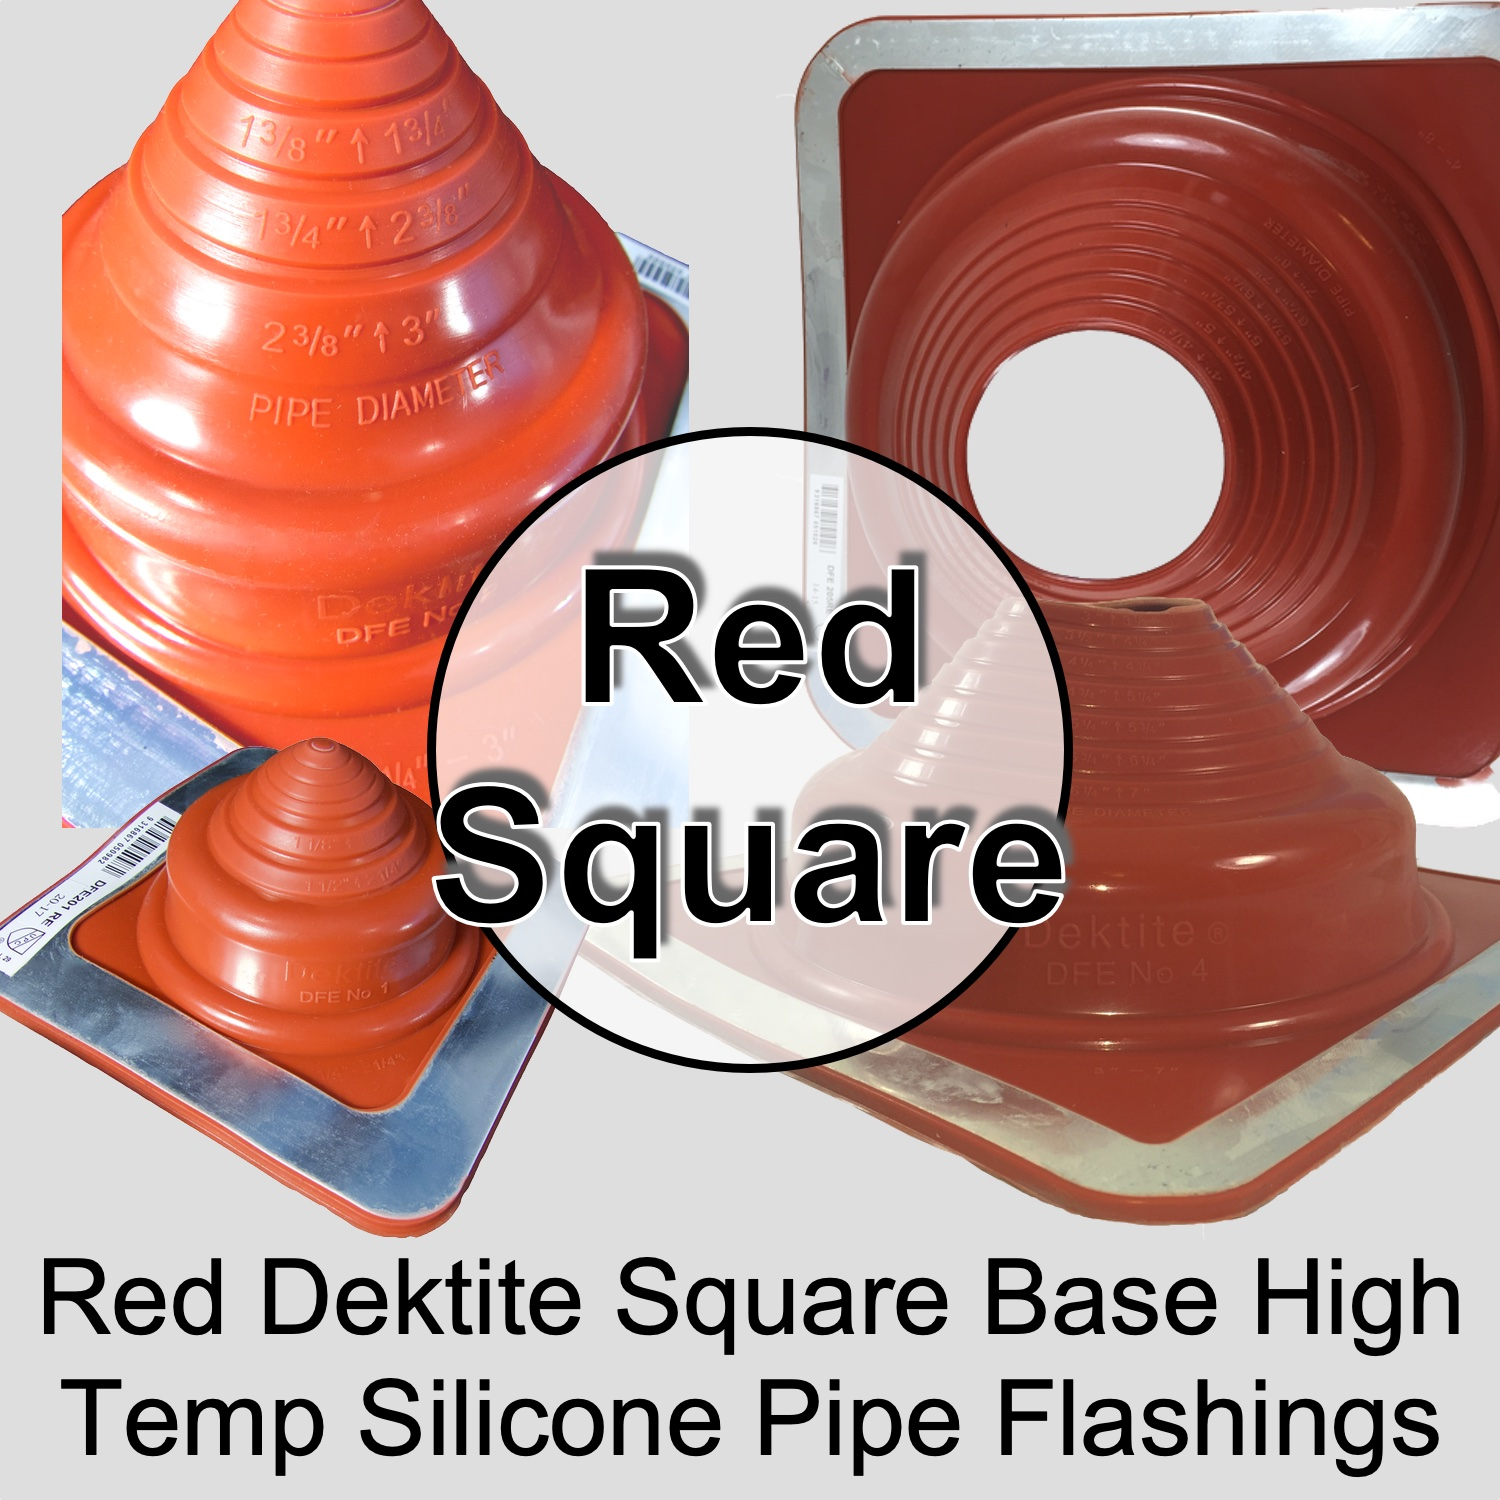 Metal Roof (Square) High Temperature Silicone Chimney, Stove Pipe Flashing